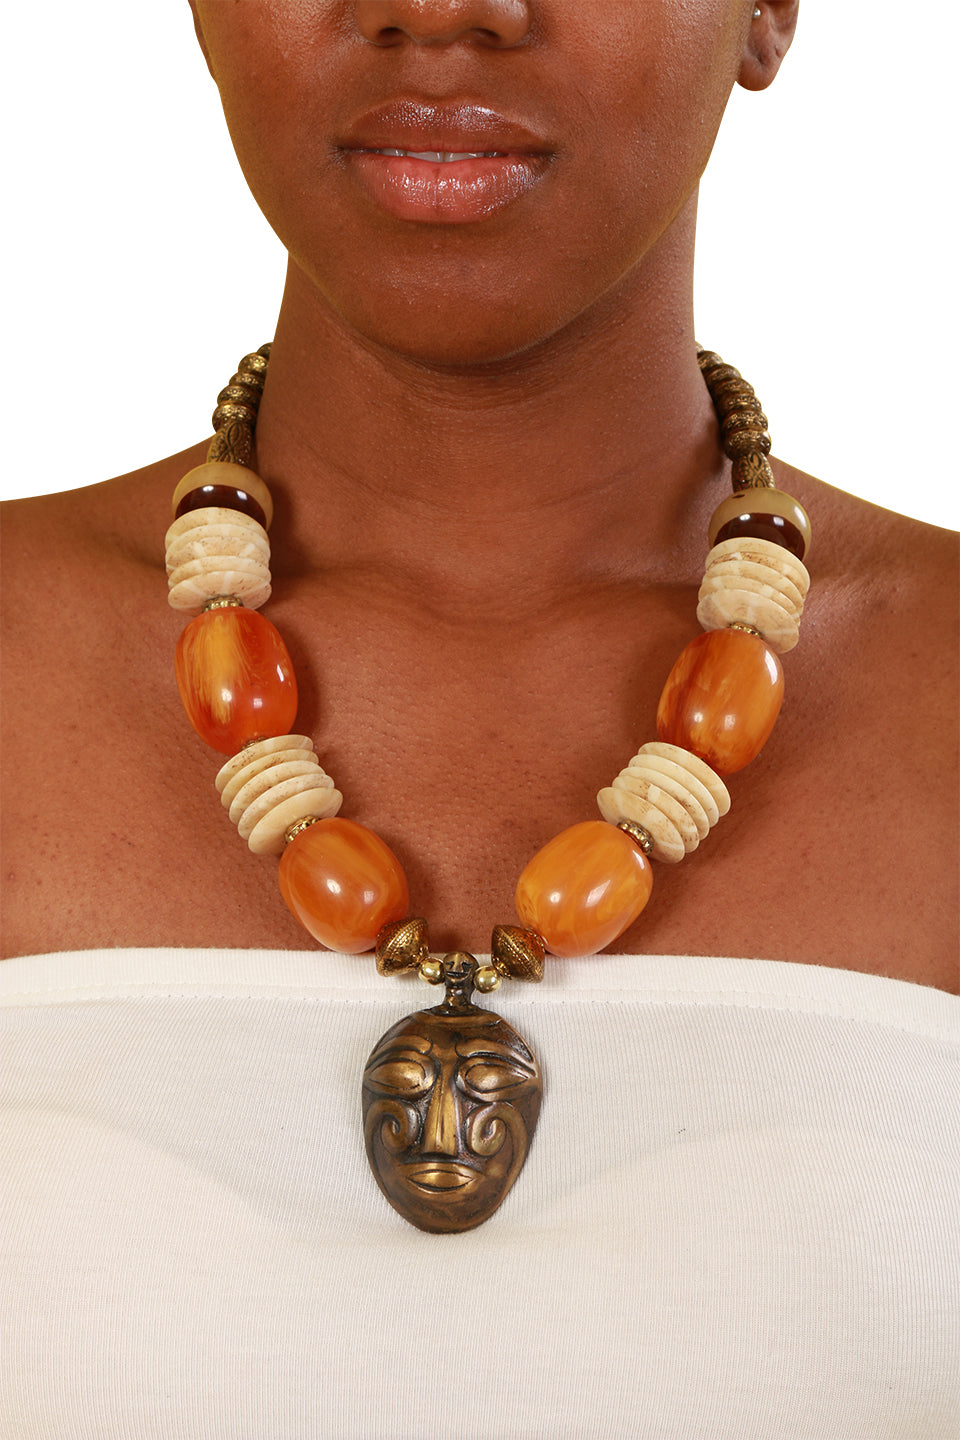 Ancestor Amber Necklace - Necklace Nolafrique Necklace